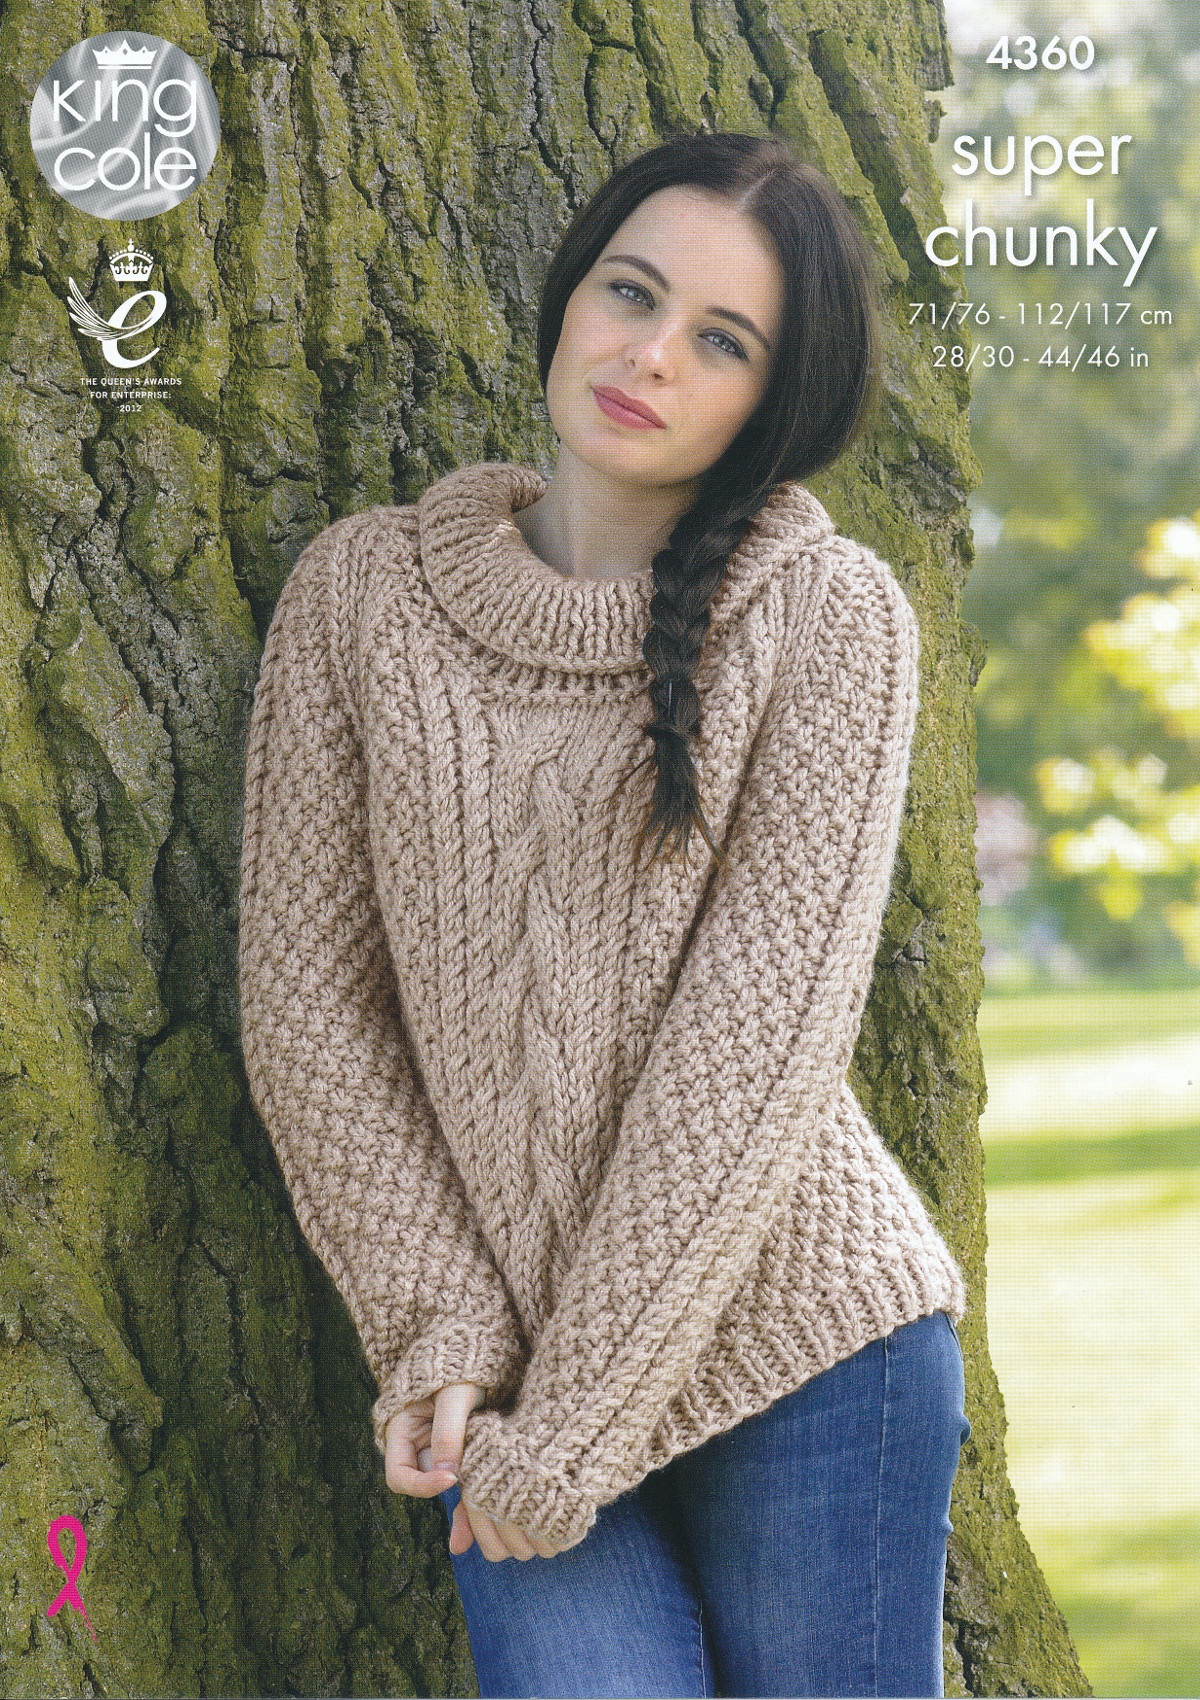 Knitting Patterns Womens Turtleneck Sweaters : Ladies Super Chunky Knitting Pattern King Cole Cable Knit Sweaters Jumpers 43...